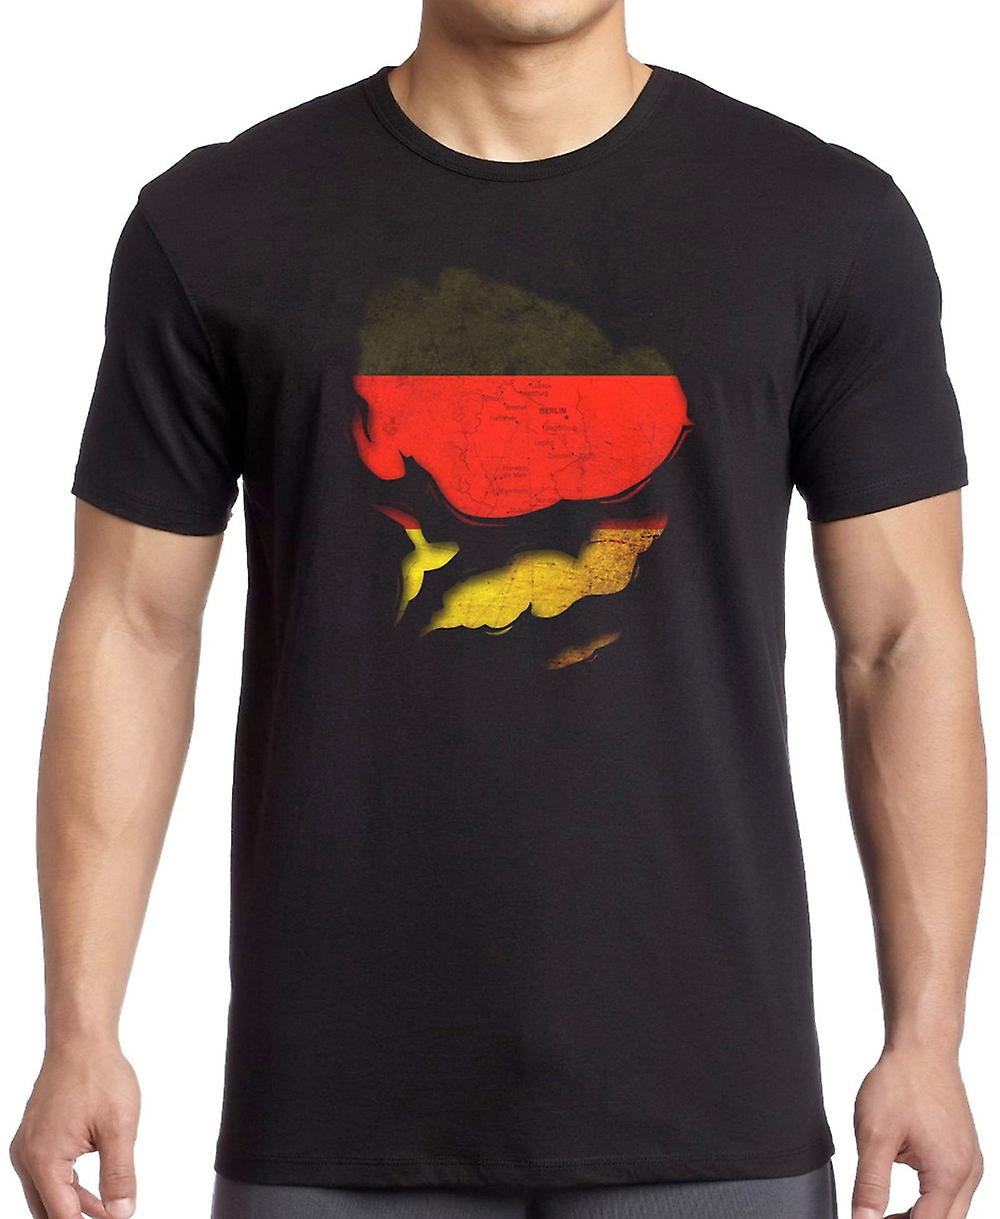 German Germany Ripped Effect Under Shirt T Shirt